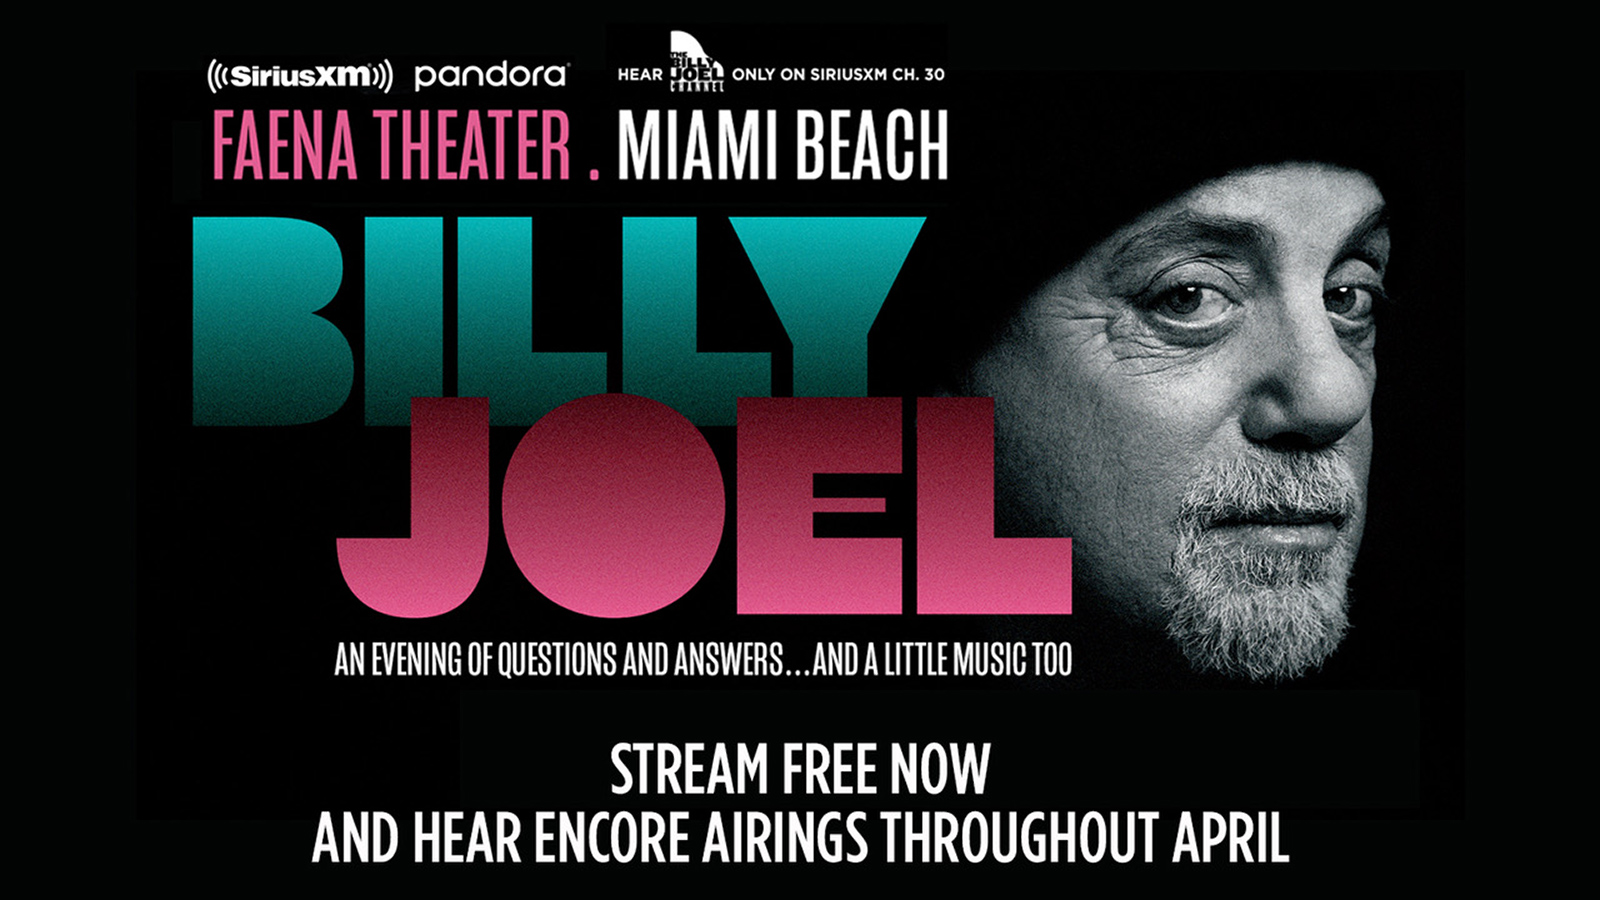 Billy Joel: An Evening of Questions and Answers…and a little music too